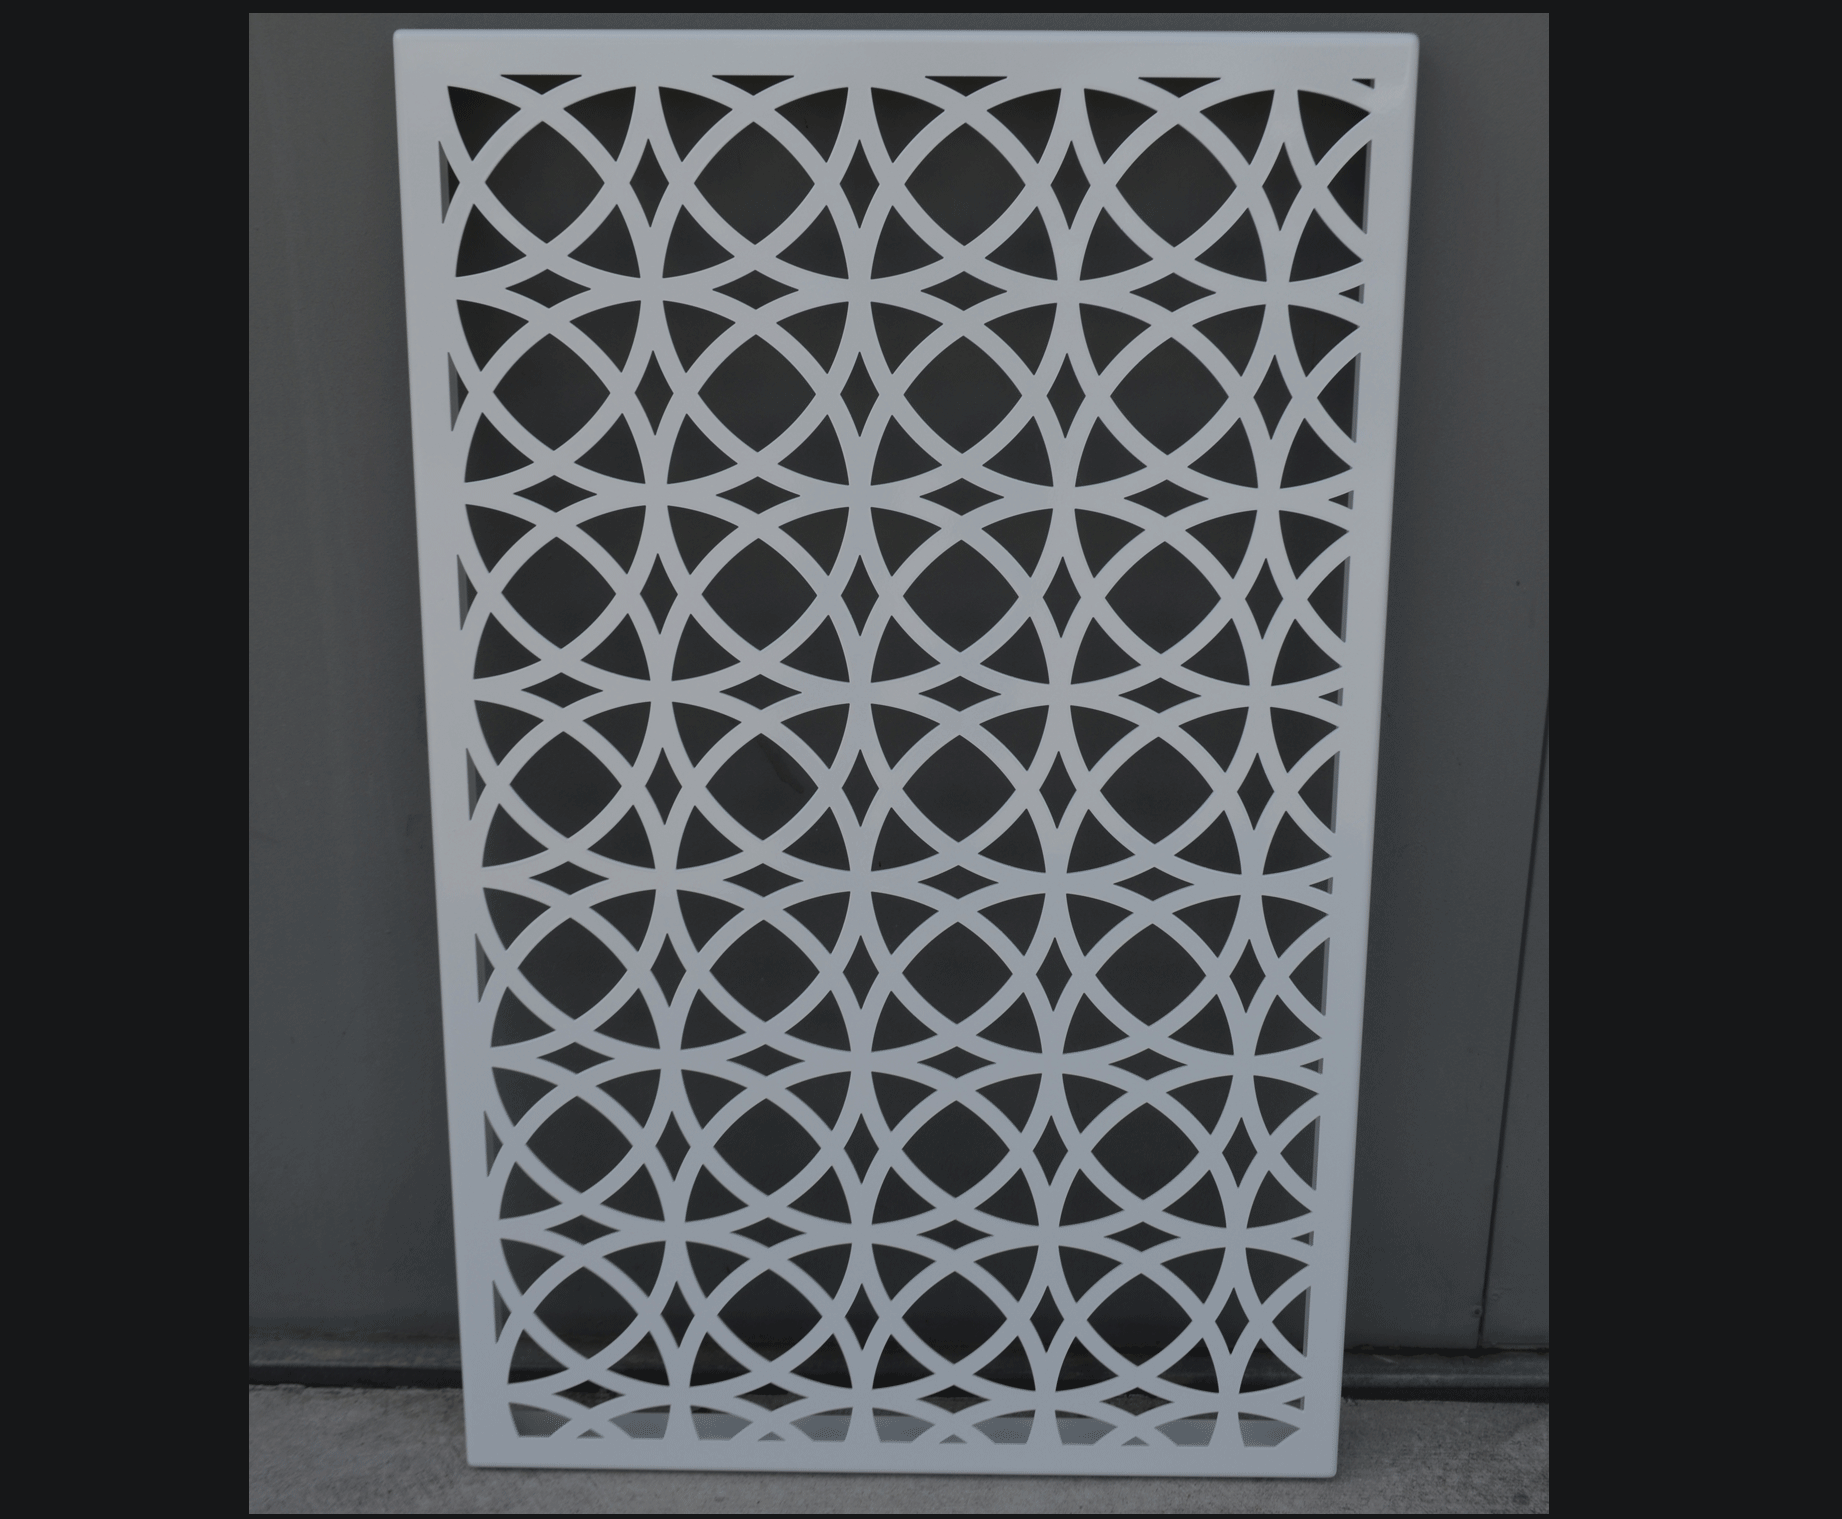 laser cut decorative screens metal screens decorative outdoor garden screens privacy. Black Bedroom Furniture Sets. Home Design Ideas